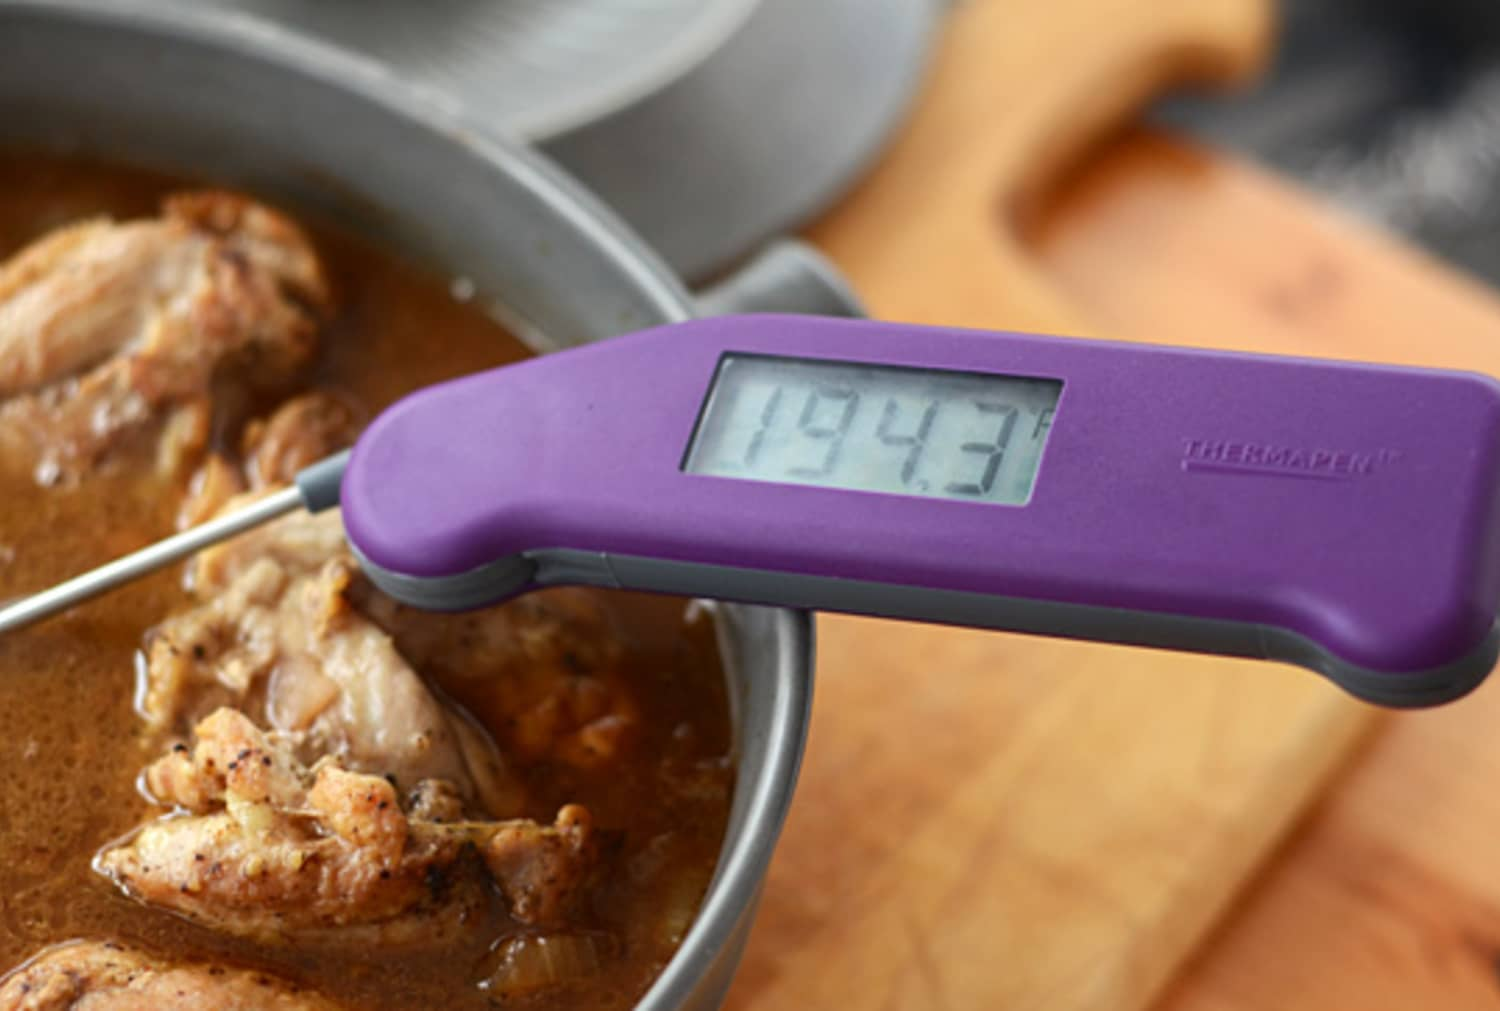 The Game-Changing Meat Thermometer Our Editor-in-Chief Loves Is on Sale Just in Time for Holiday Cooking (and Gifting!)